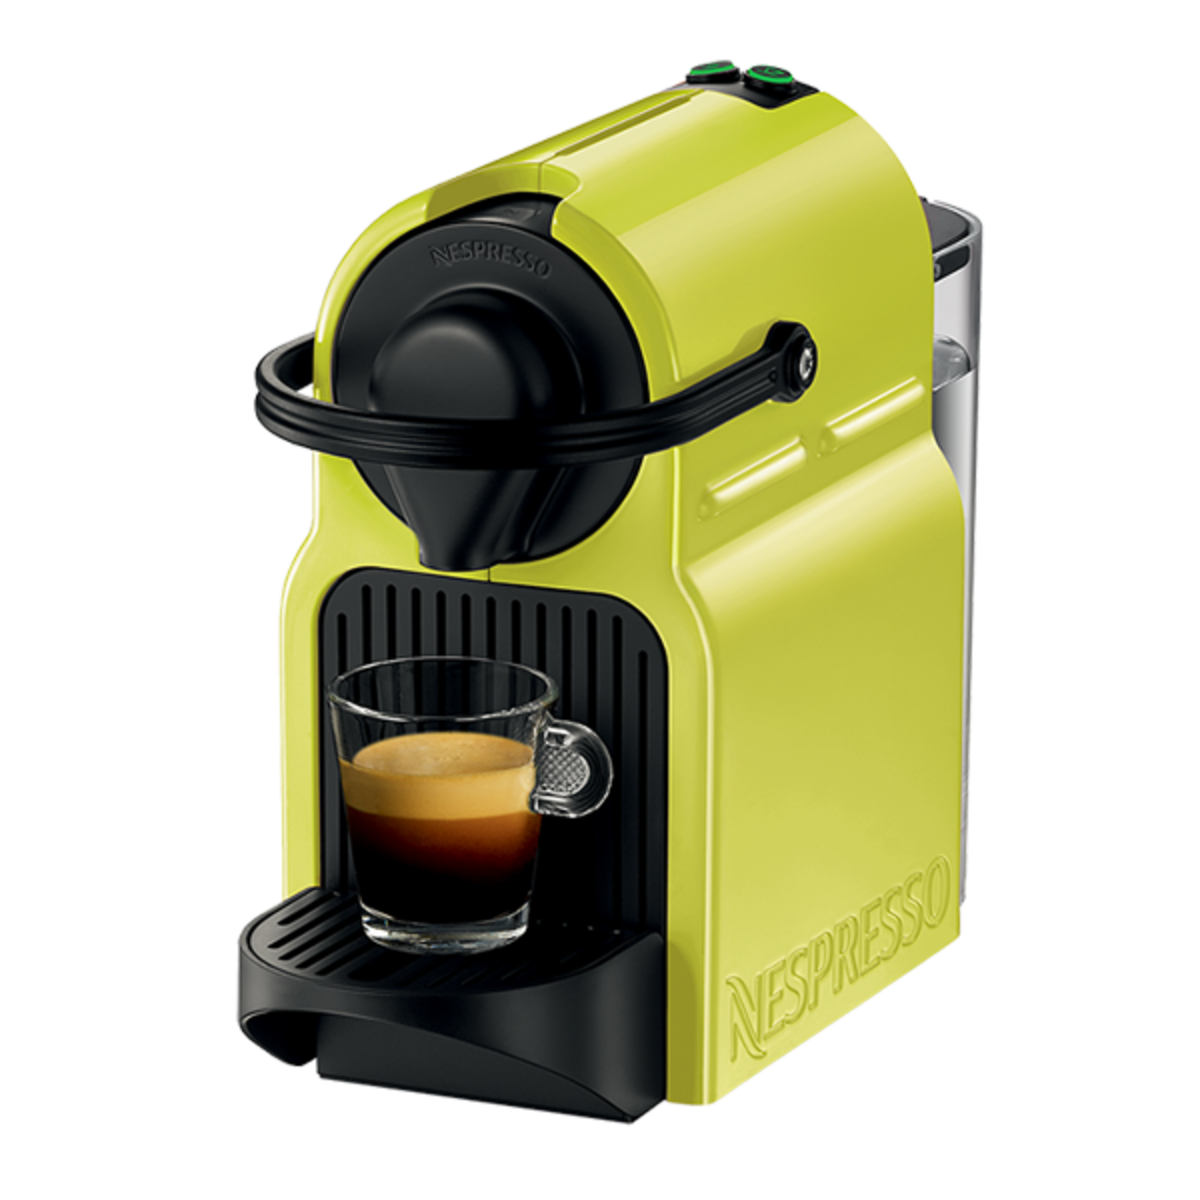 Nespresso Inissia Lime Yellow (Limited Edition)